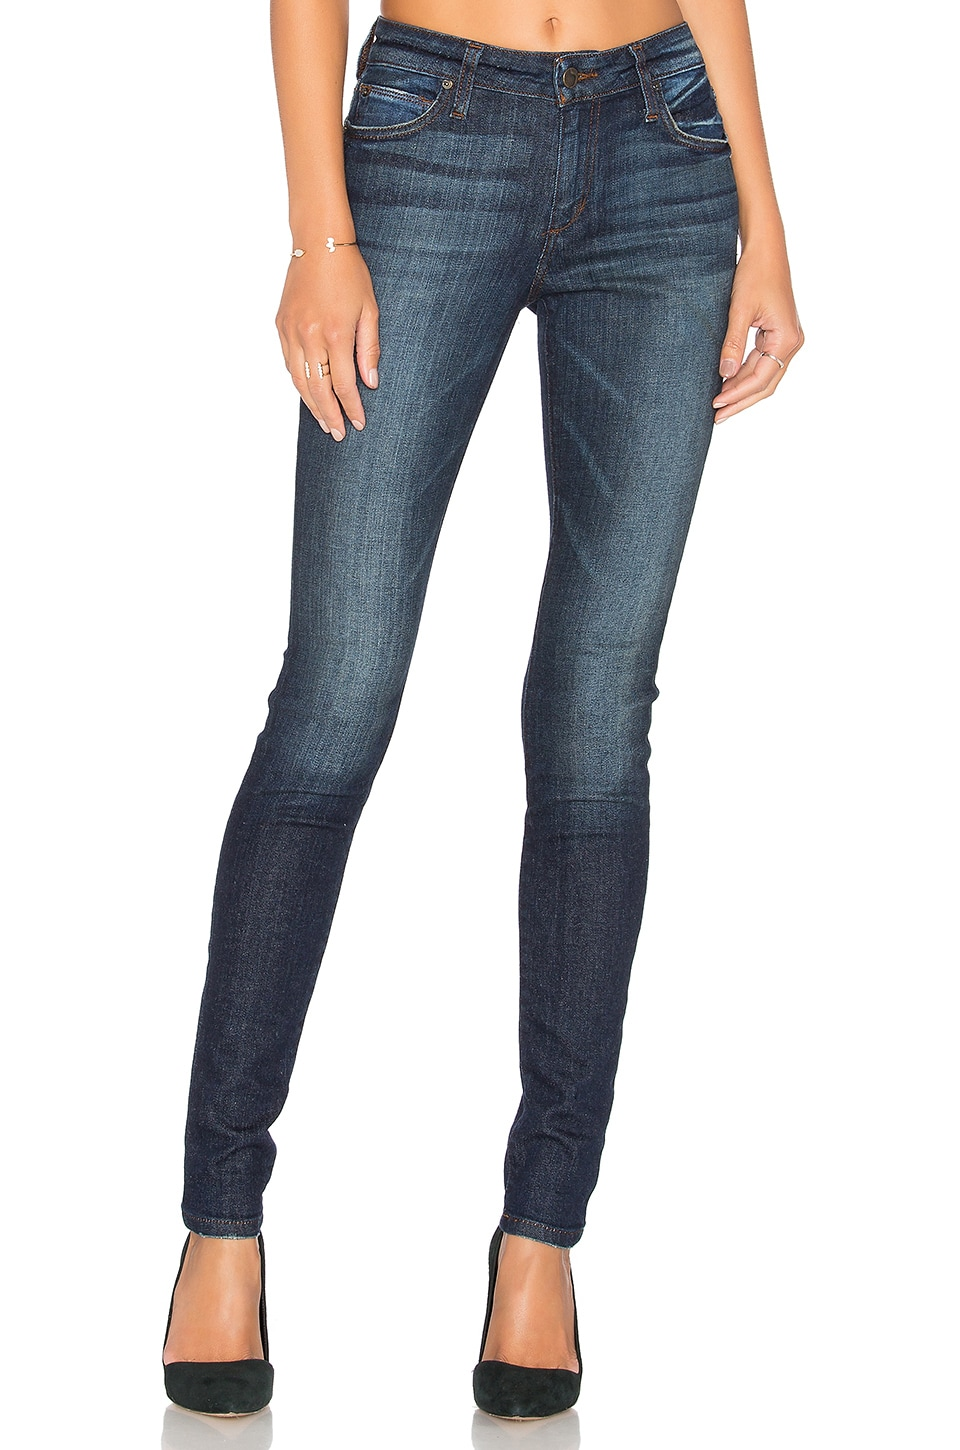 The Icon Skinny by Joe's Jeans